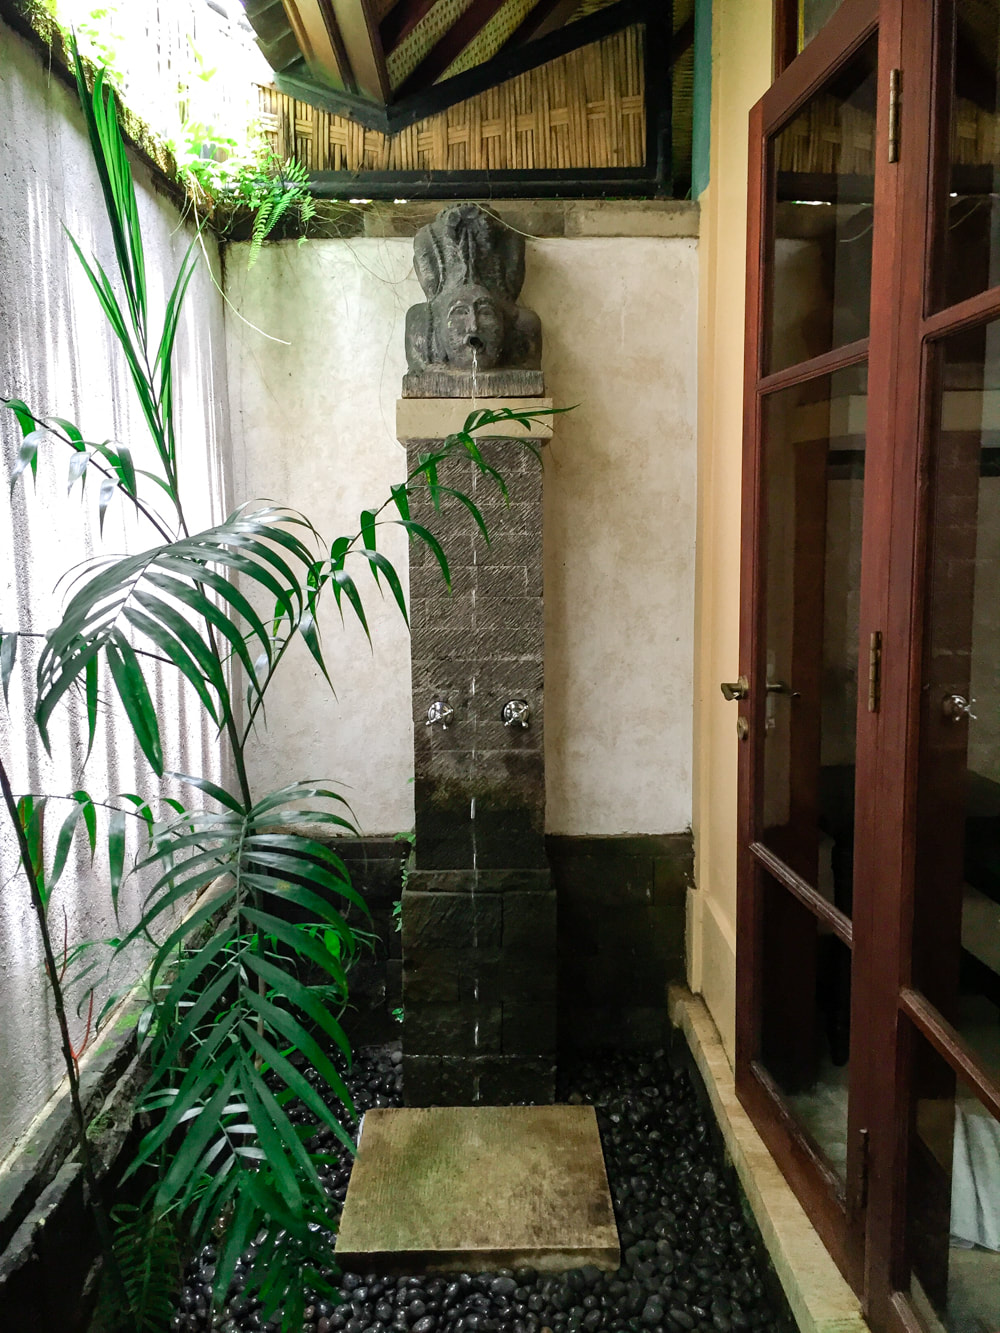 One of two outdoor showers. Dwaraka, the Royal Villas, Ubud, Bali, Indonesia.